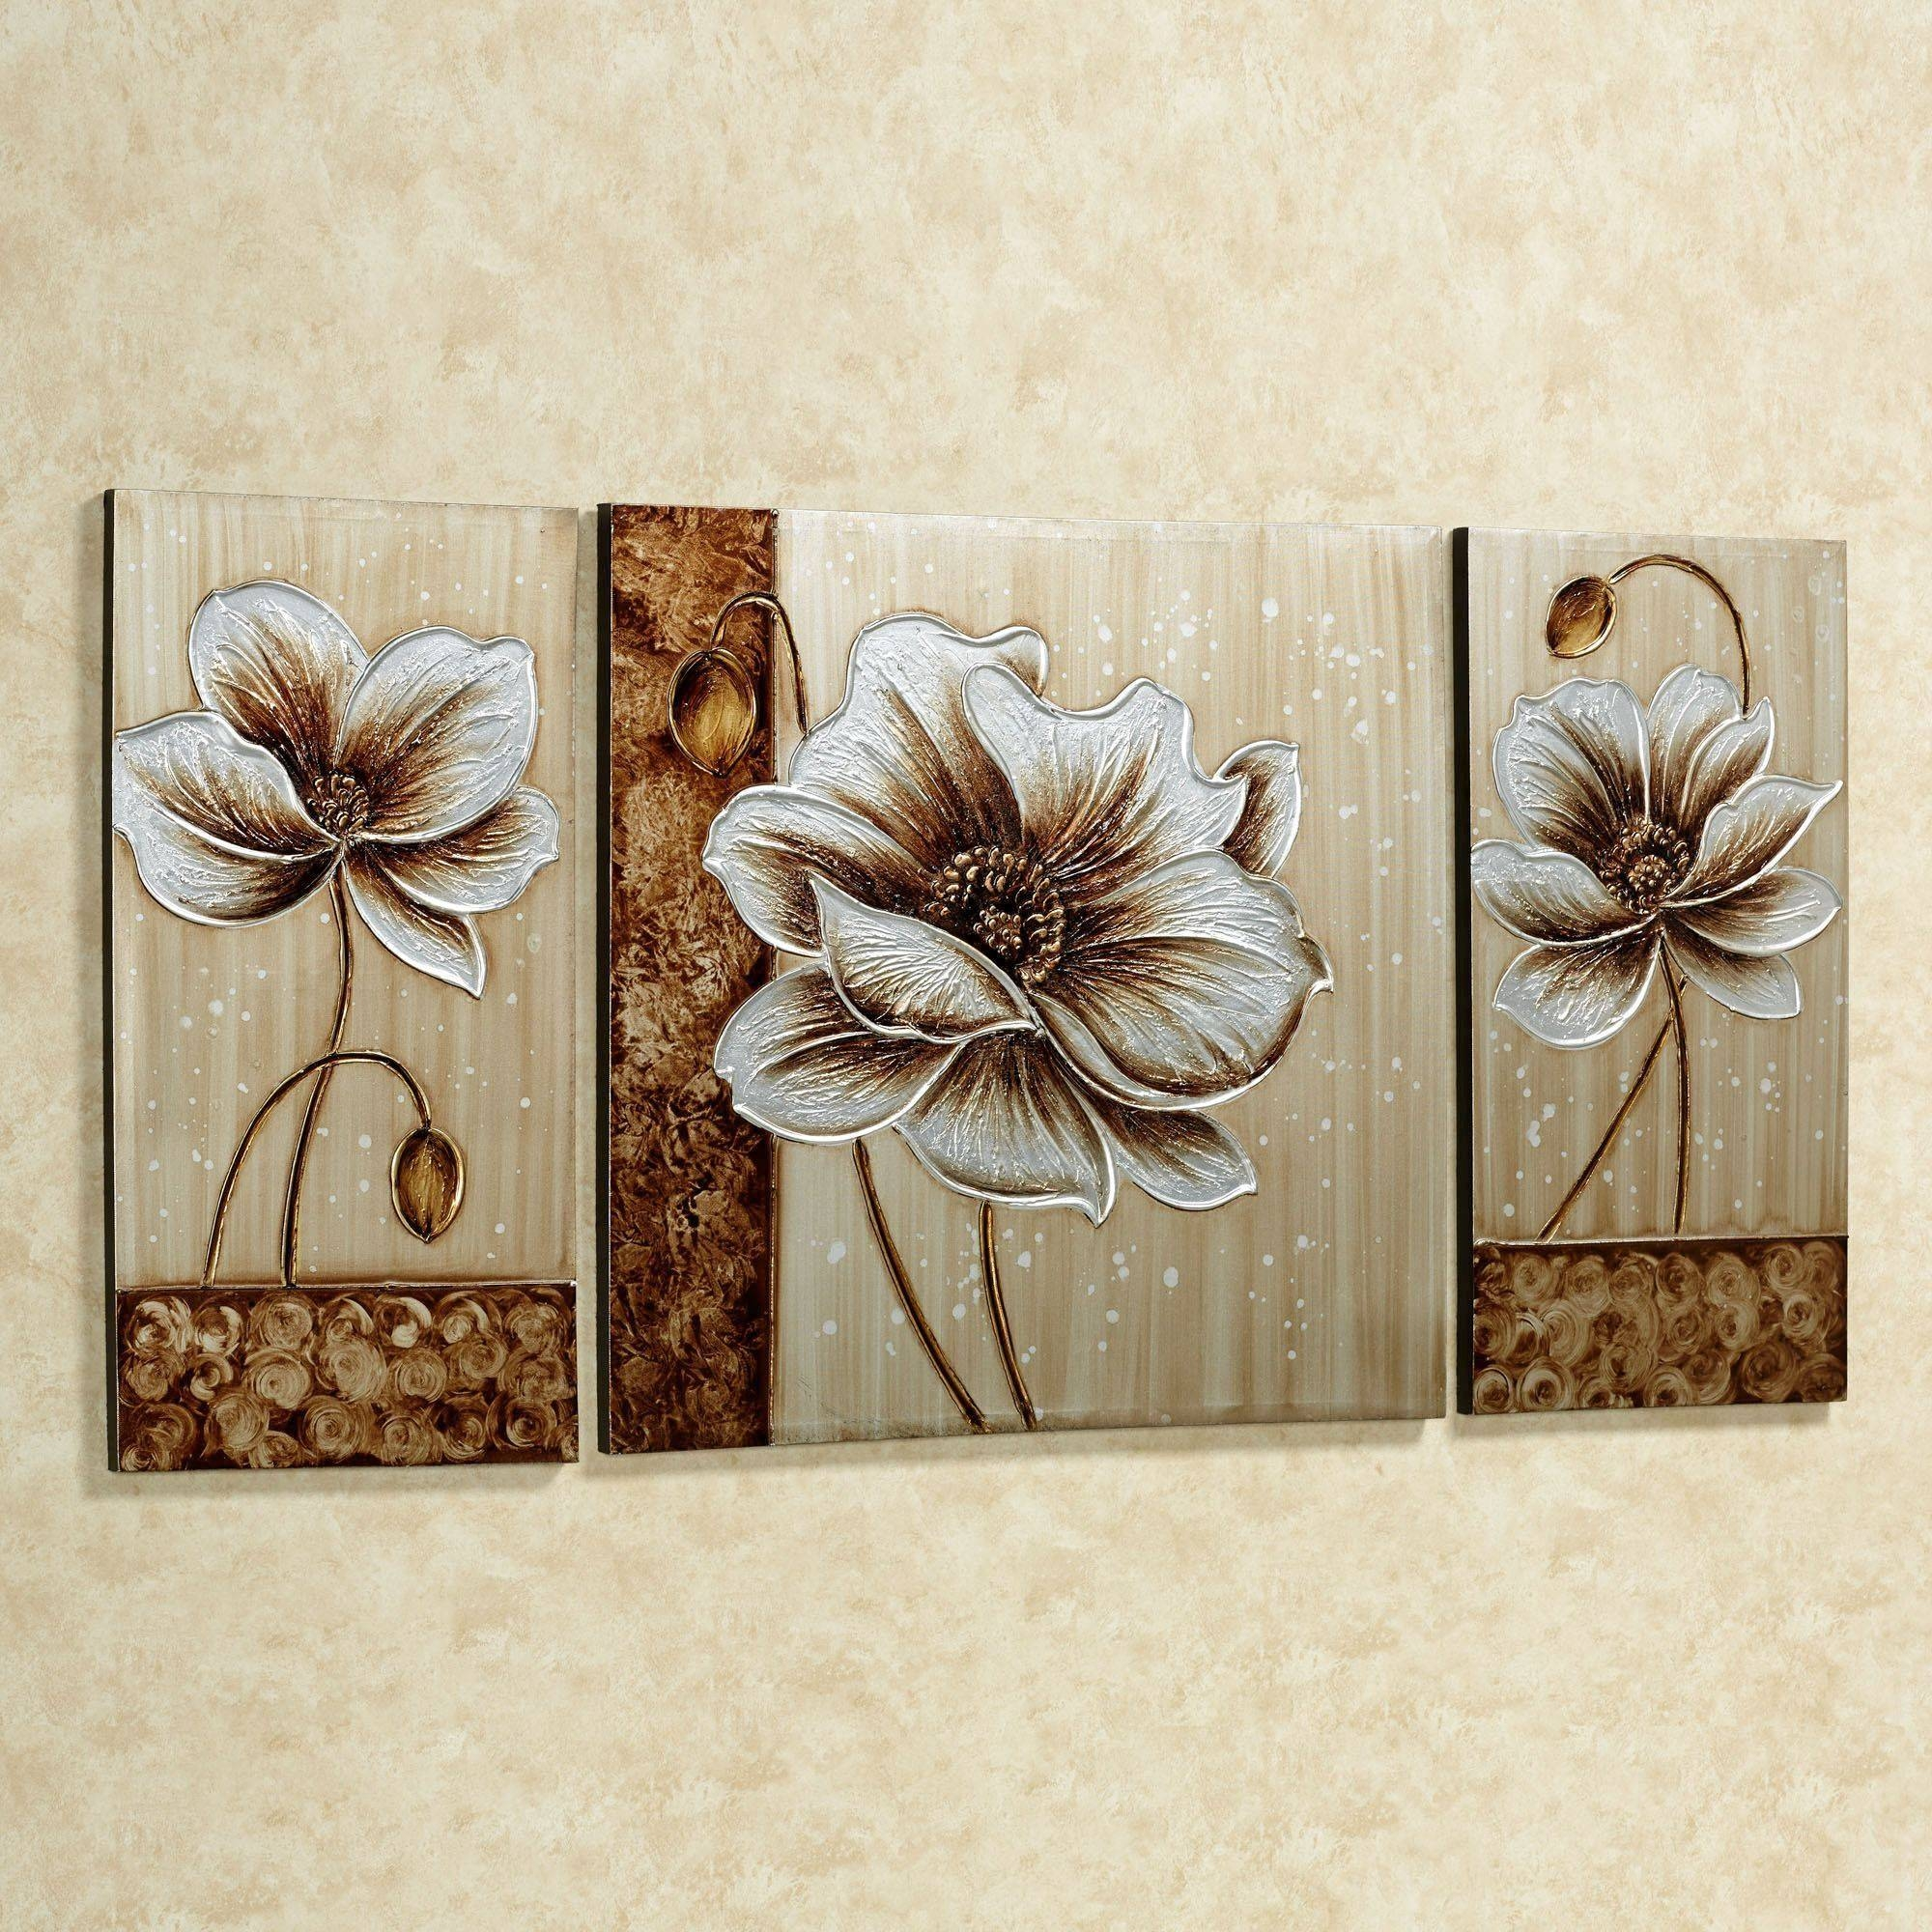 Subtle Elegance Floral Canvas Wall Art Set With Regard To Current 3 Piece Wall Art Sets (View 13 of 25)